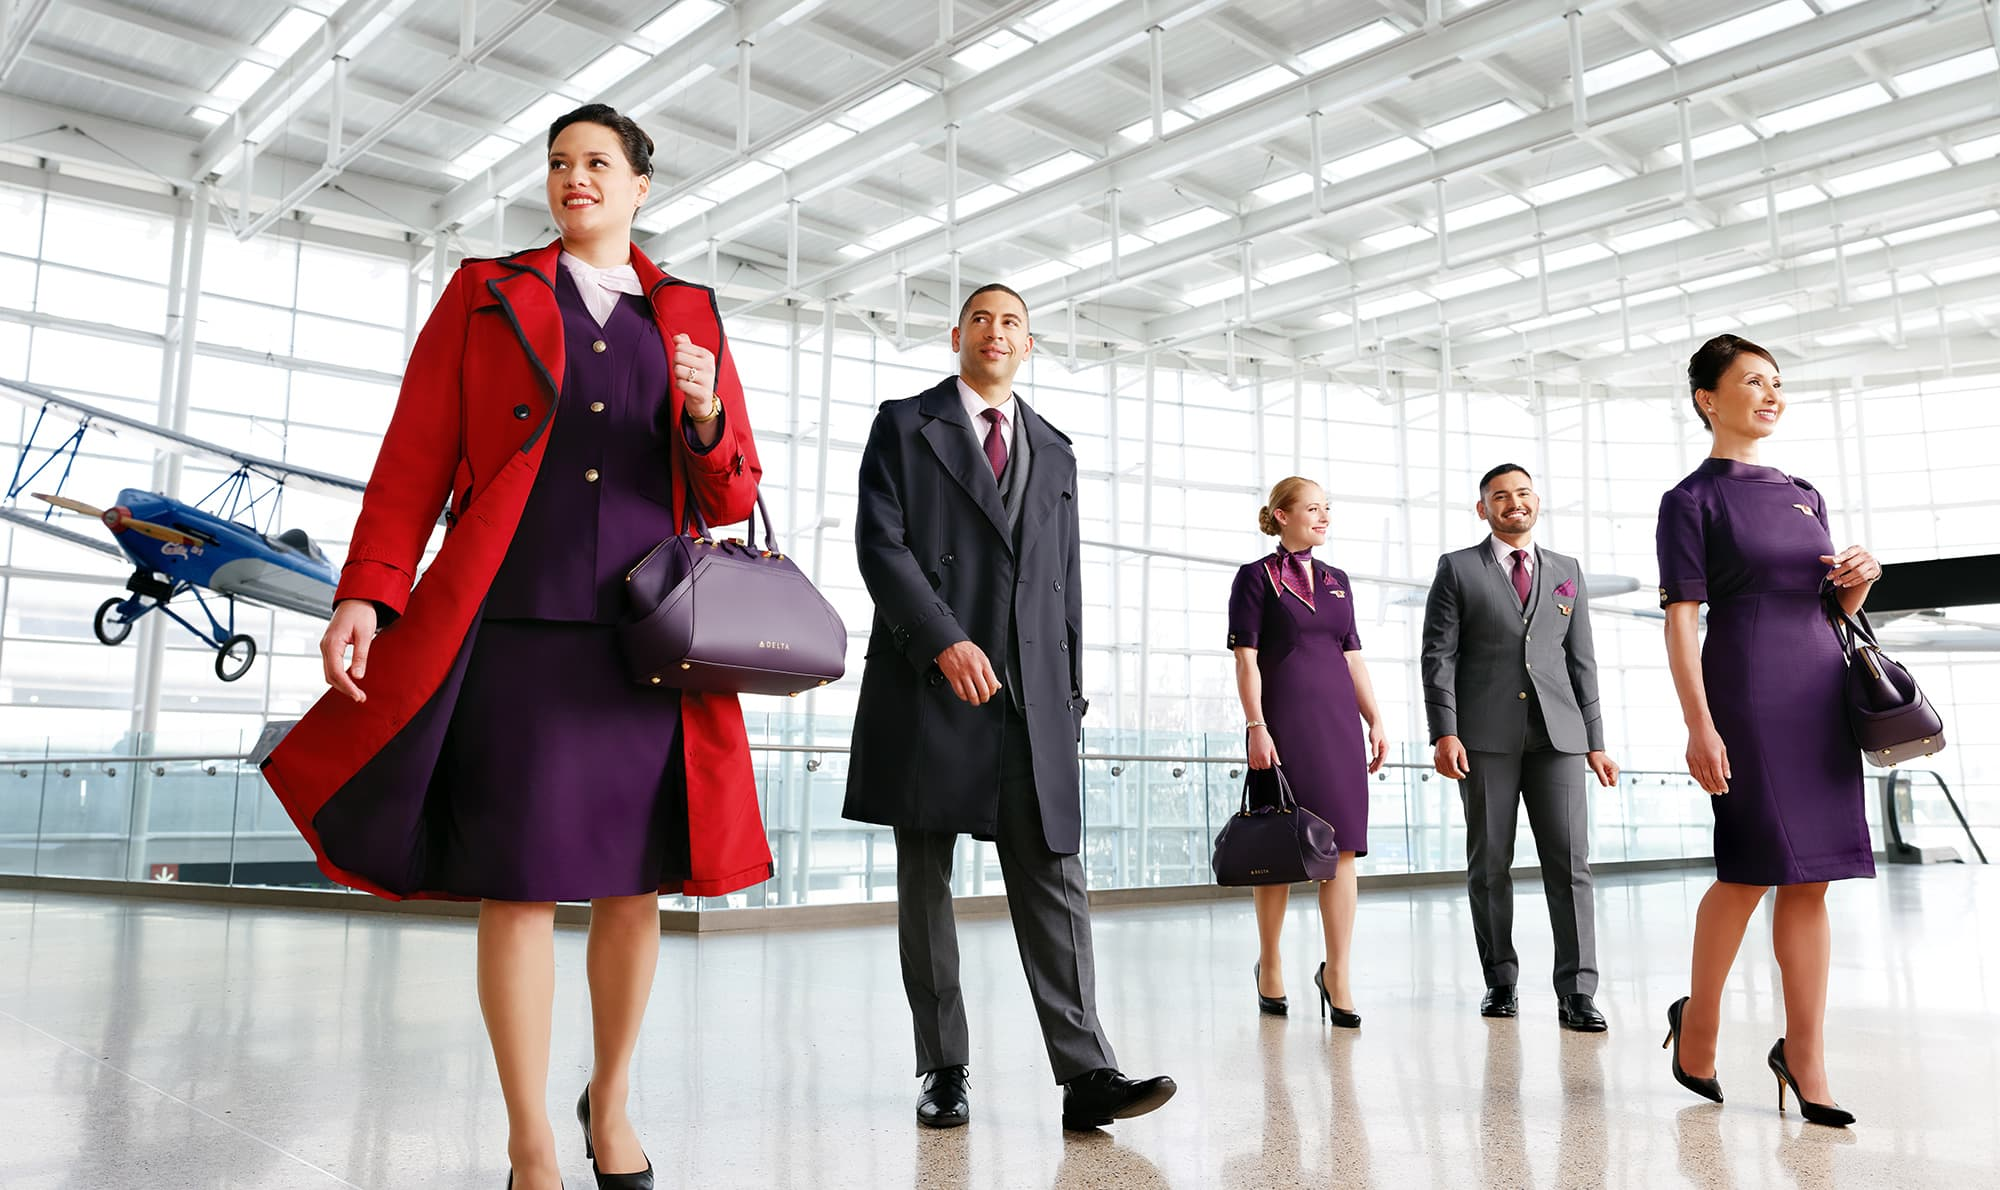 ce879207115 Delta Air Lines  new Zac Posen uniforms will go with shorter heels